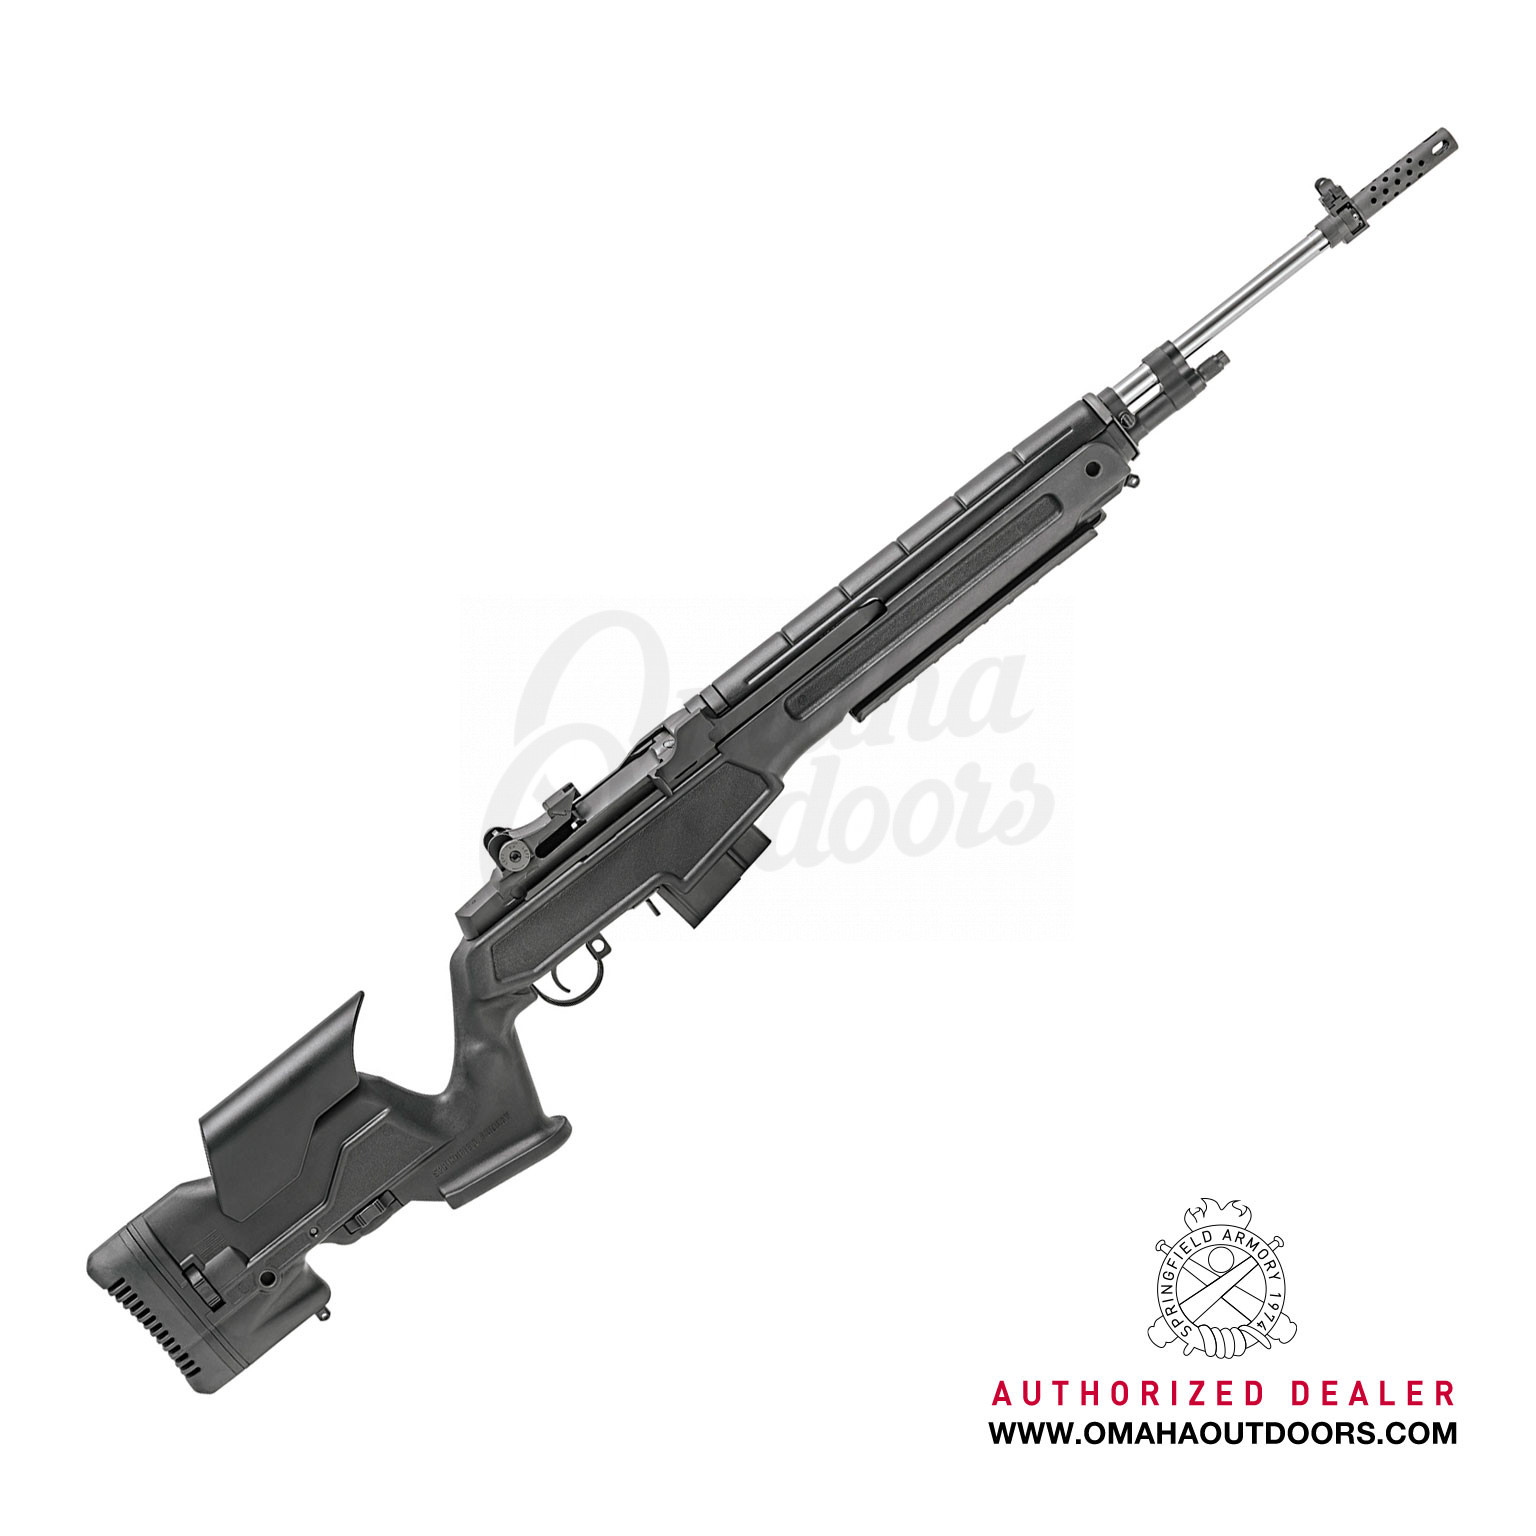 Springfield Armory Loaded M1A Precision Rifle 22